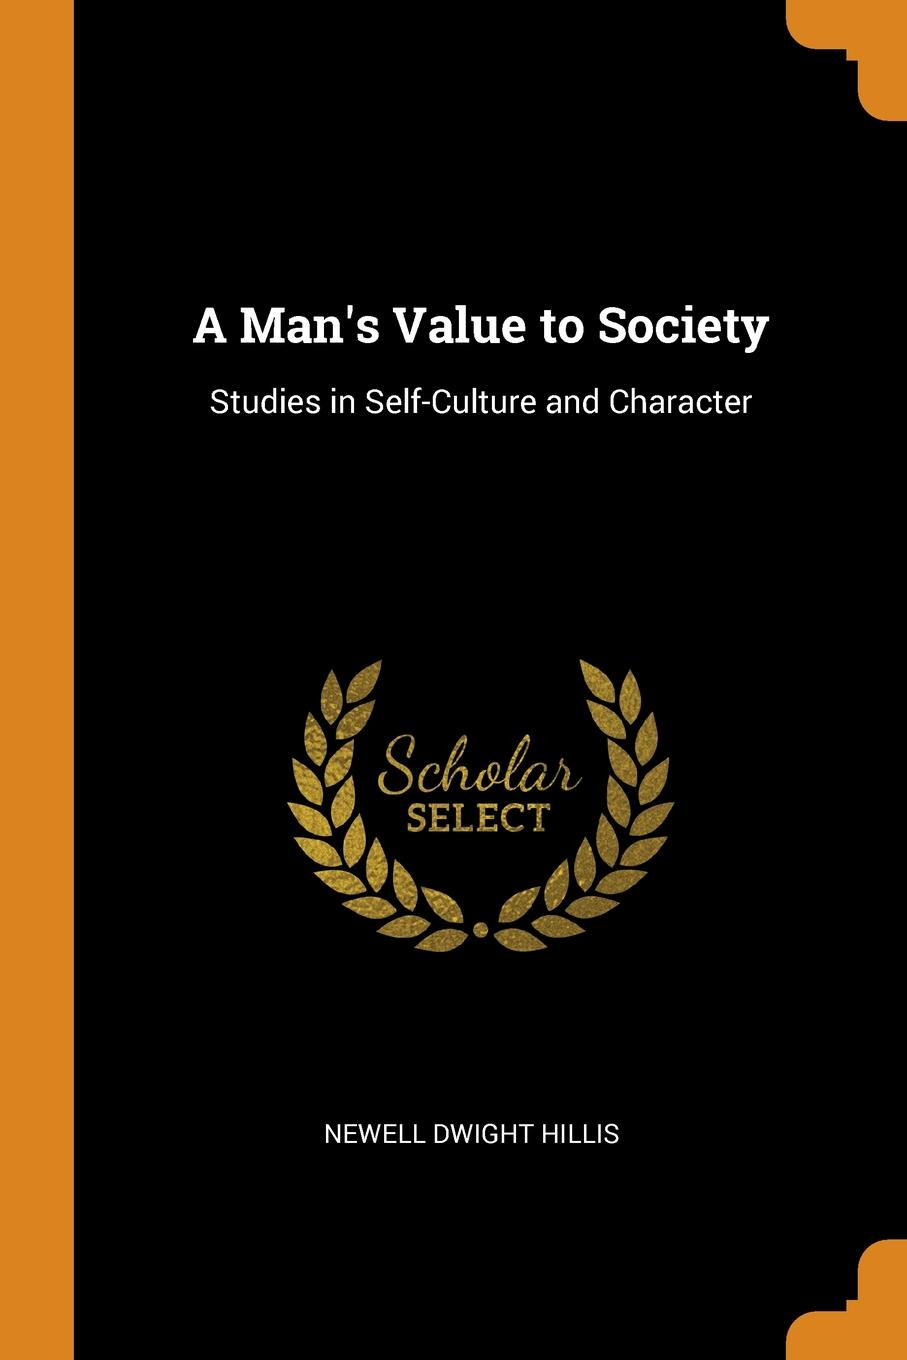 Newell Dwight Hillis. A Man.s Value to Society. Studies in Self-Culture and Character